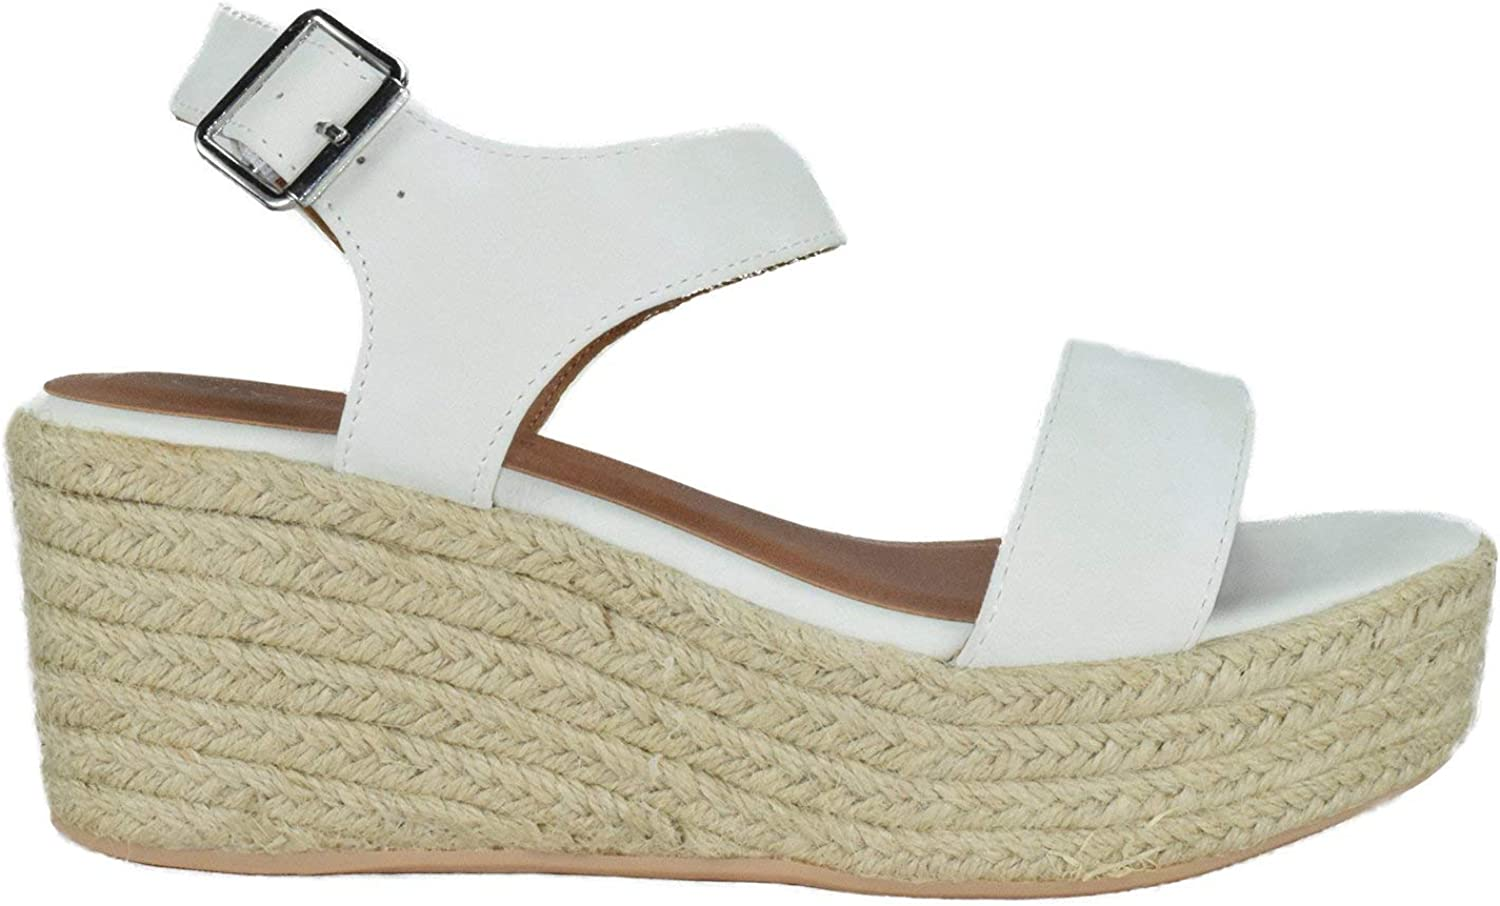 City Classified Womens Wedge Espadrilles Jute Rope Trim Ankle Strap Open Toe Sandals